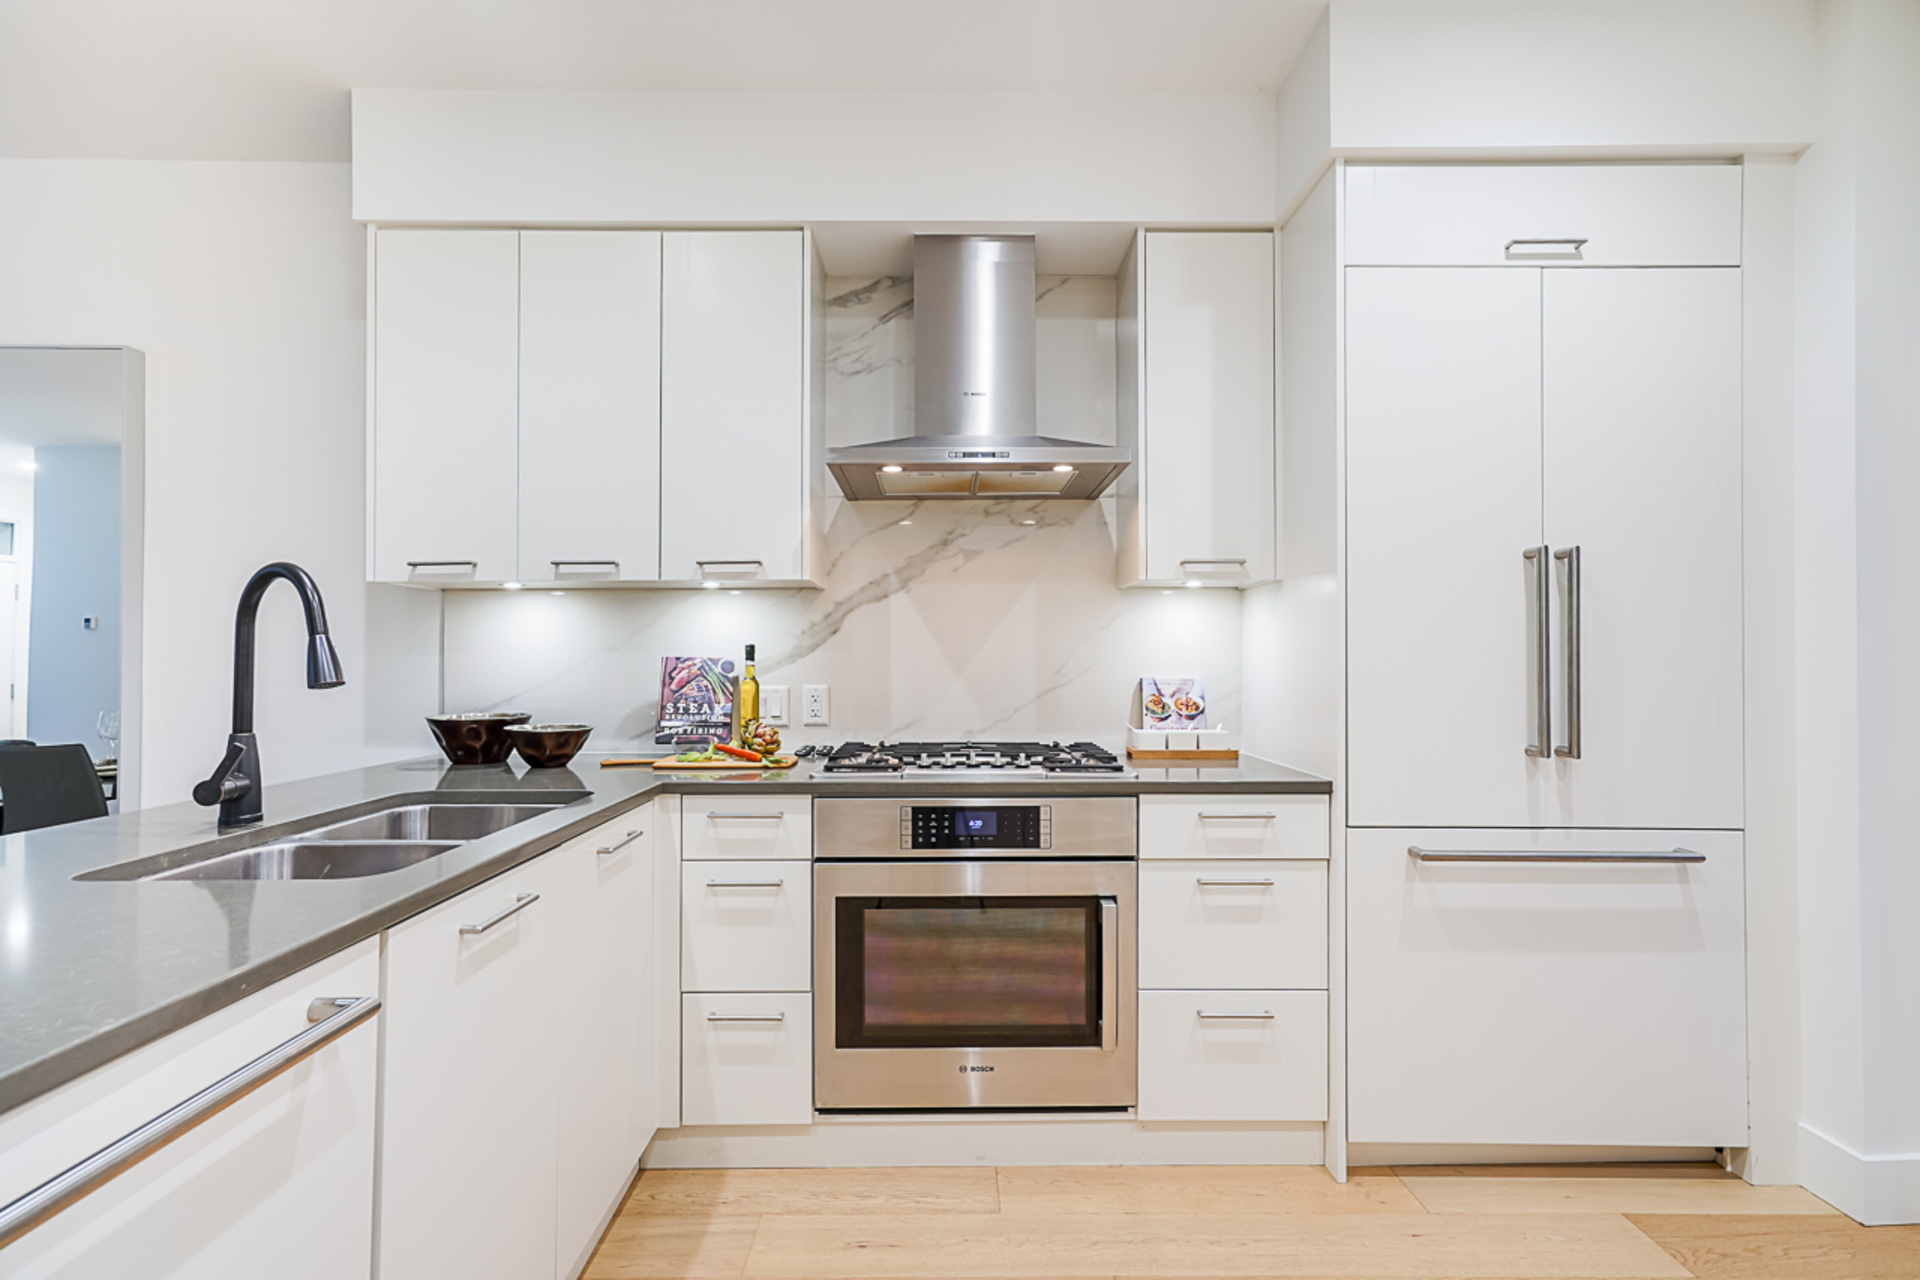 unit-11-1133-rigewood-drive-north-vancouver-15 at 11 - 1133 Ridgewood Drive, Edgemont, North Vancouver